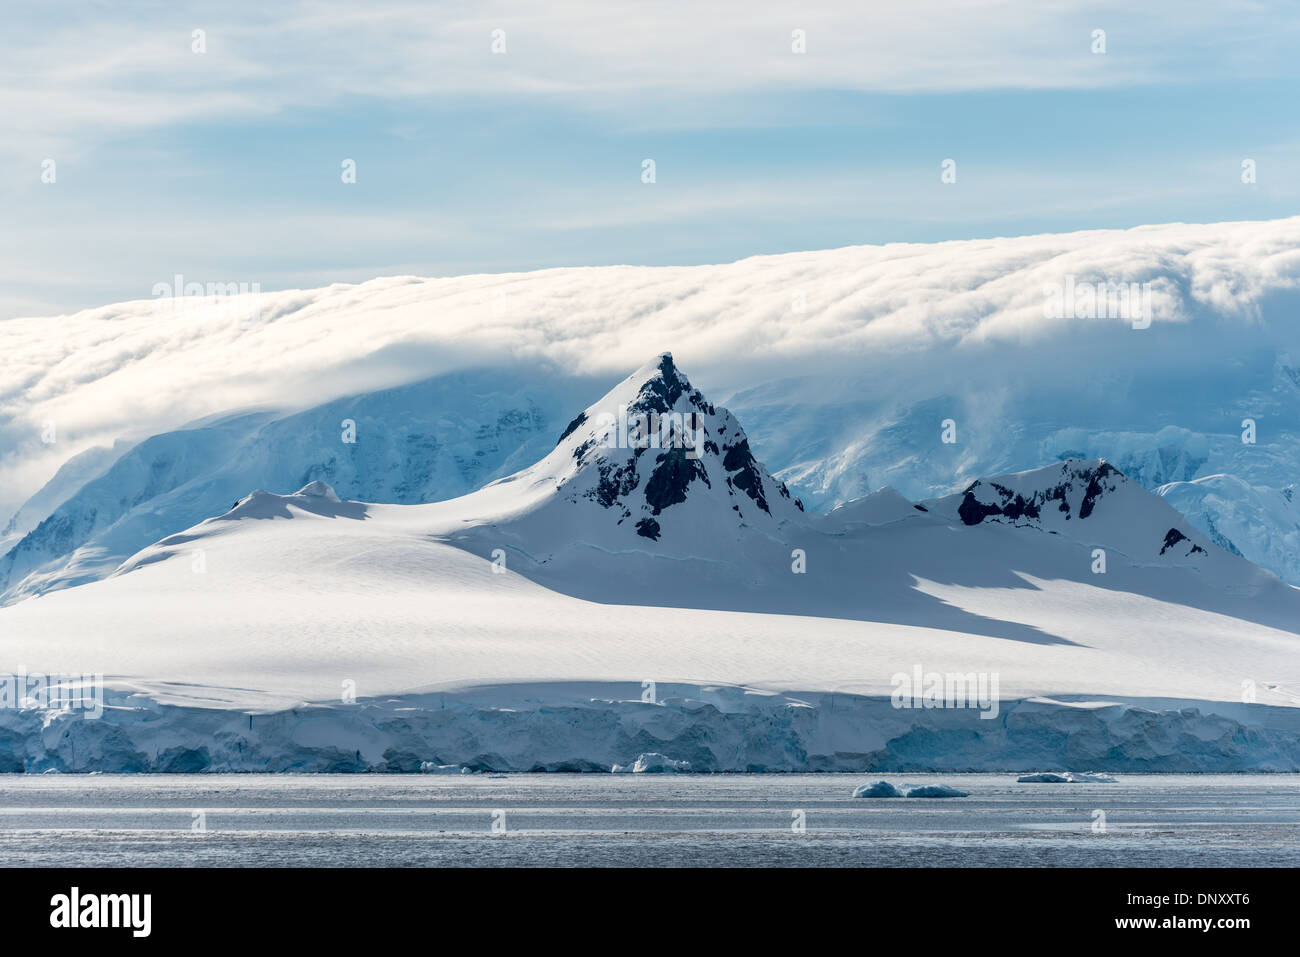 ANTARCTICA - A steep peak rises above the surround mountain, while in the background clouds obscure an even taller Stock Photo